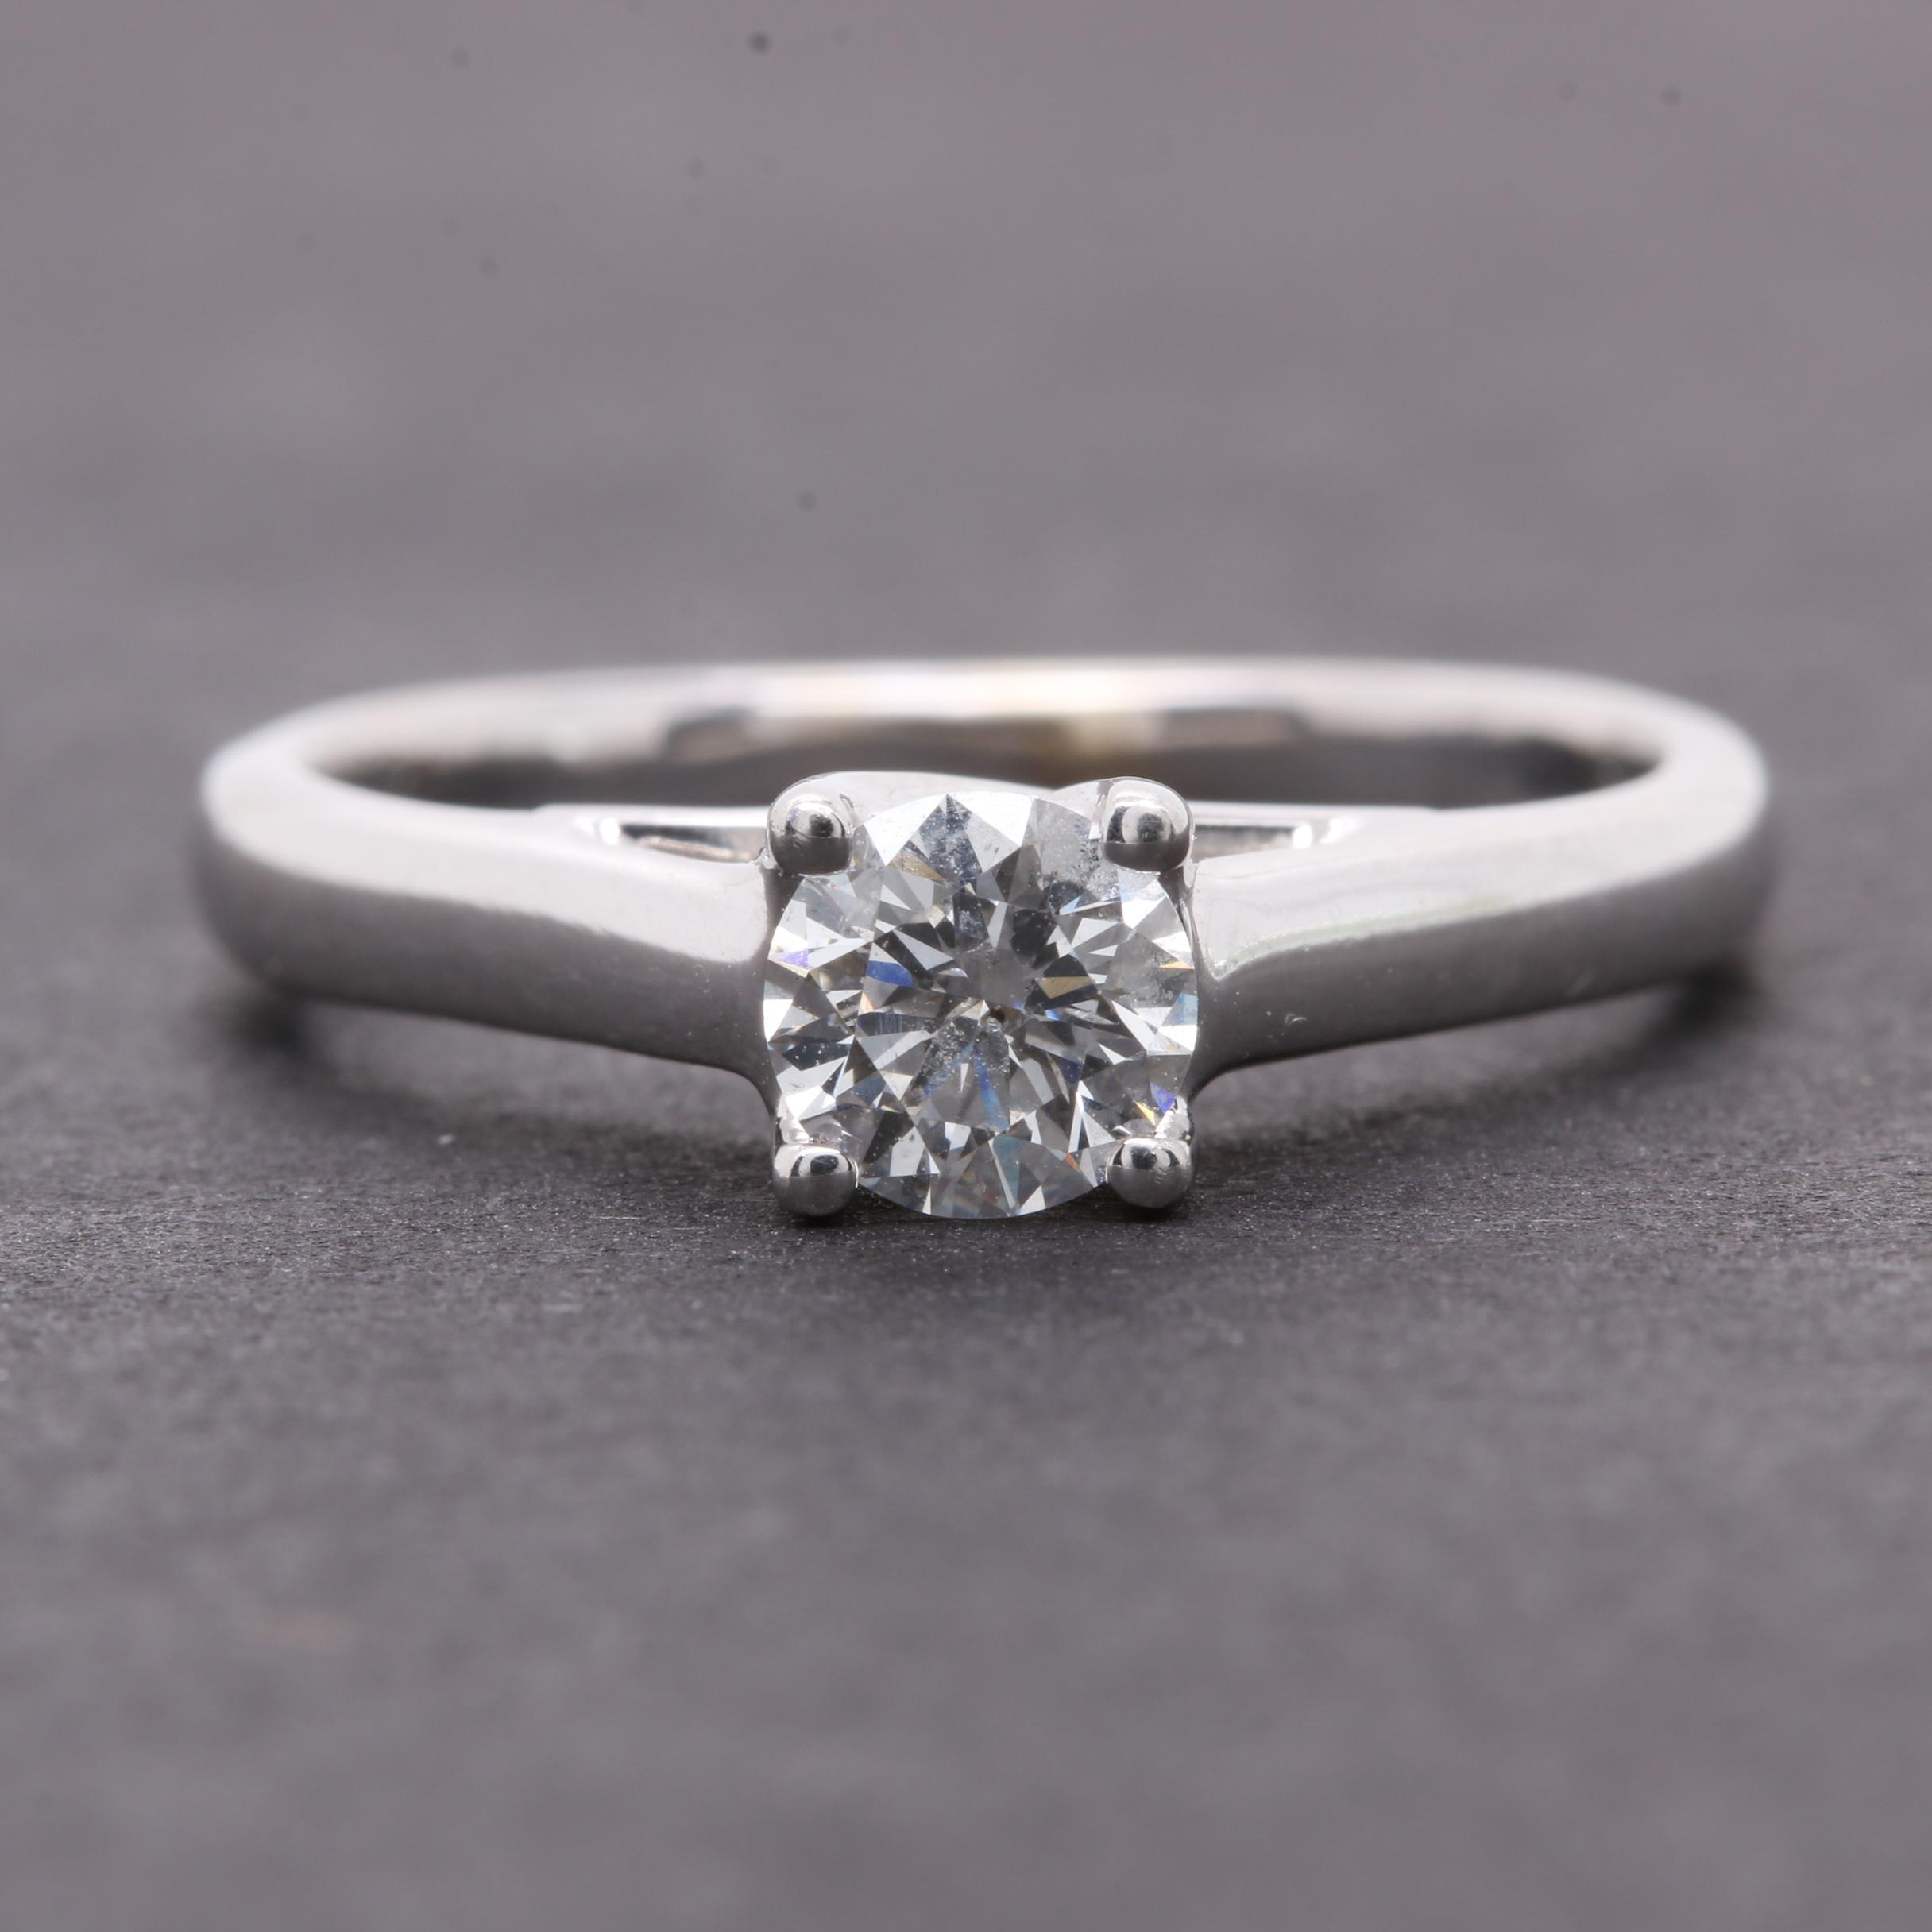 14K White Gold Diamond Solitaire Ring with Platinum Accent